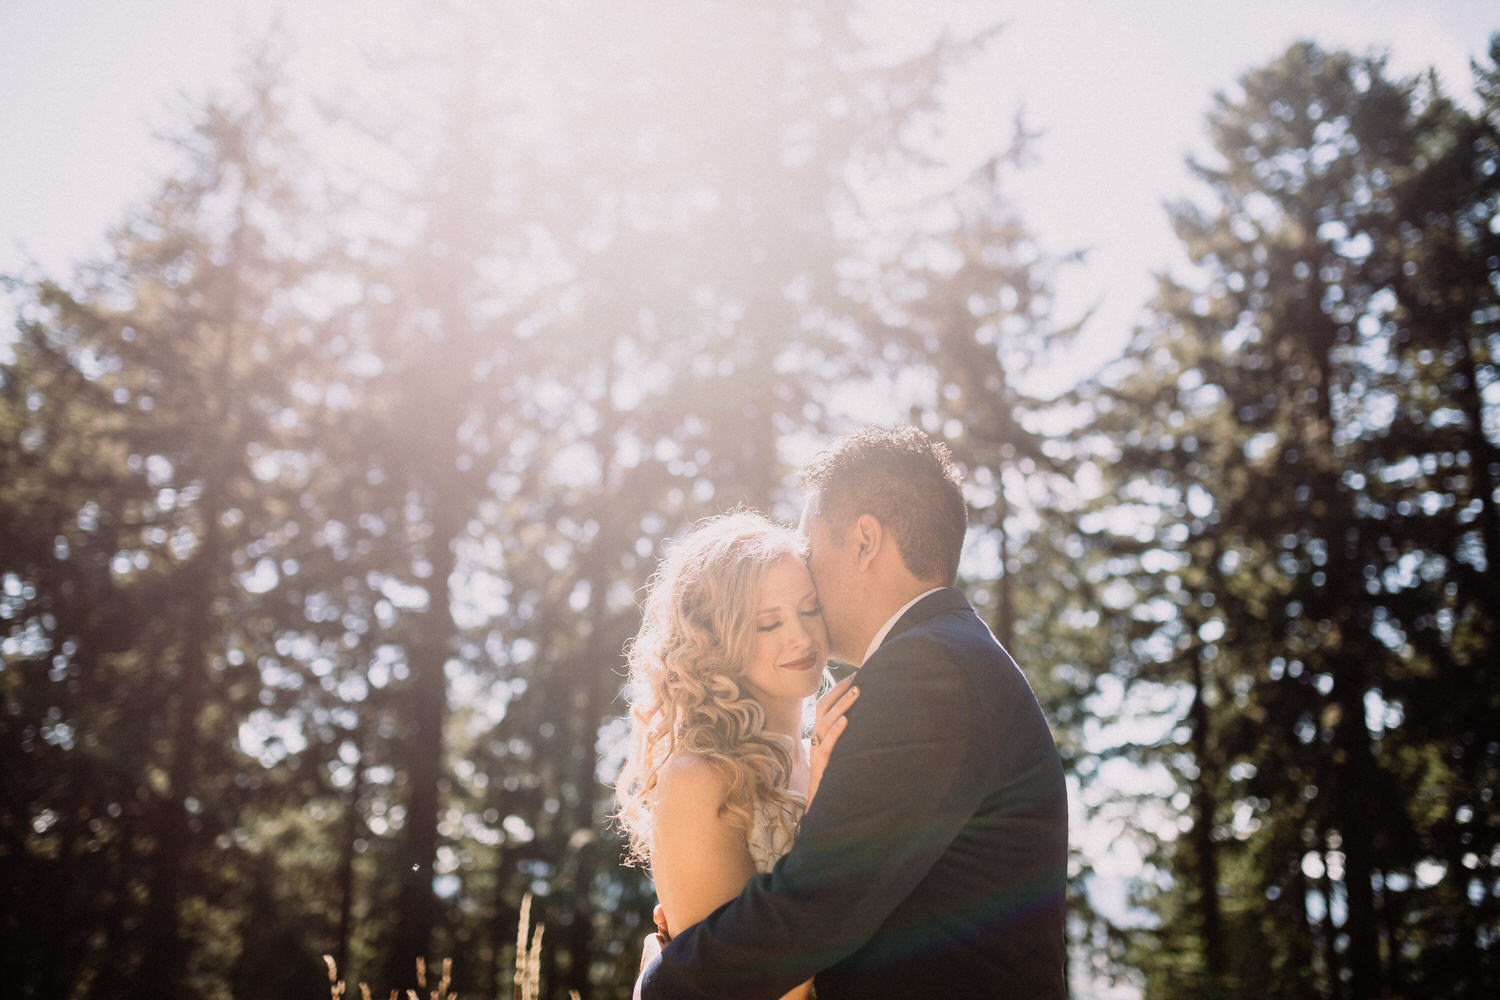 Mount Tabor Portland Oregon wedding photographer013.JPG